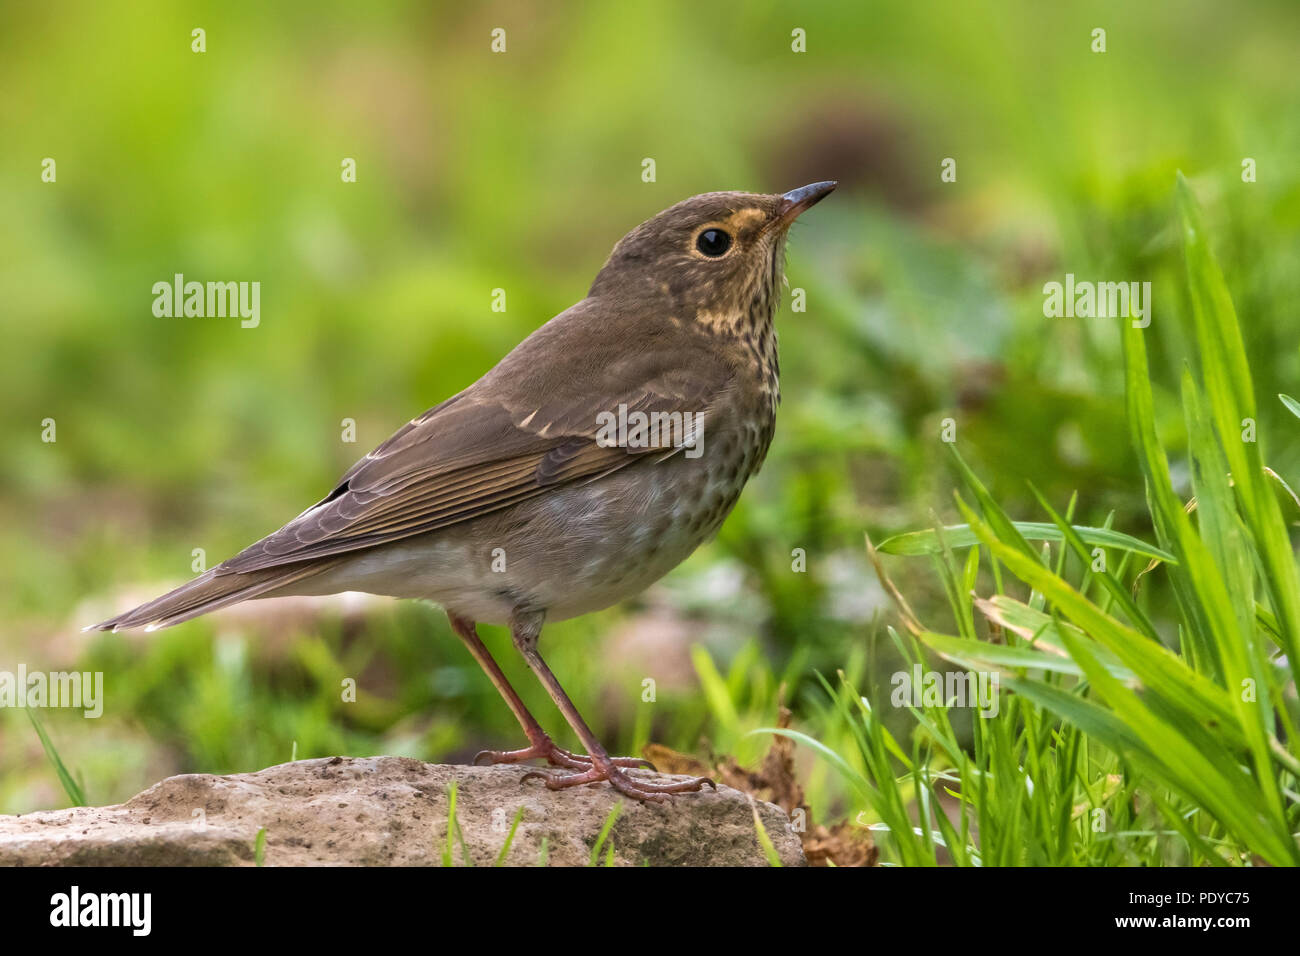 Swainson's Thrush; Catharus ustulatus Stock Photo